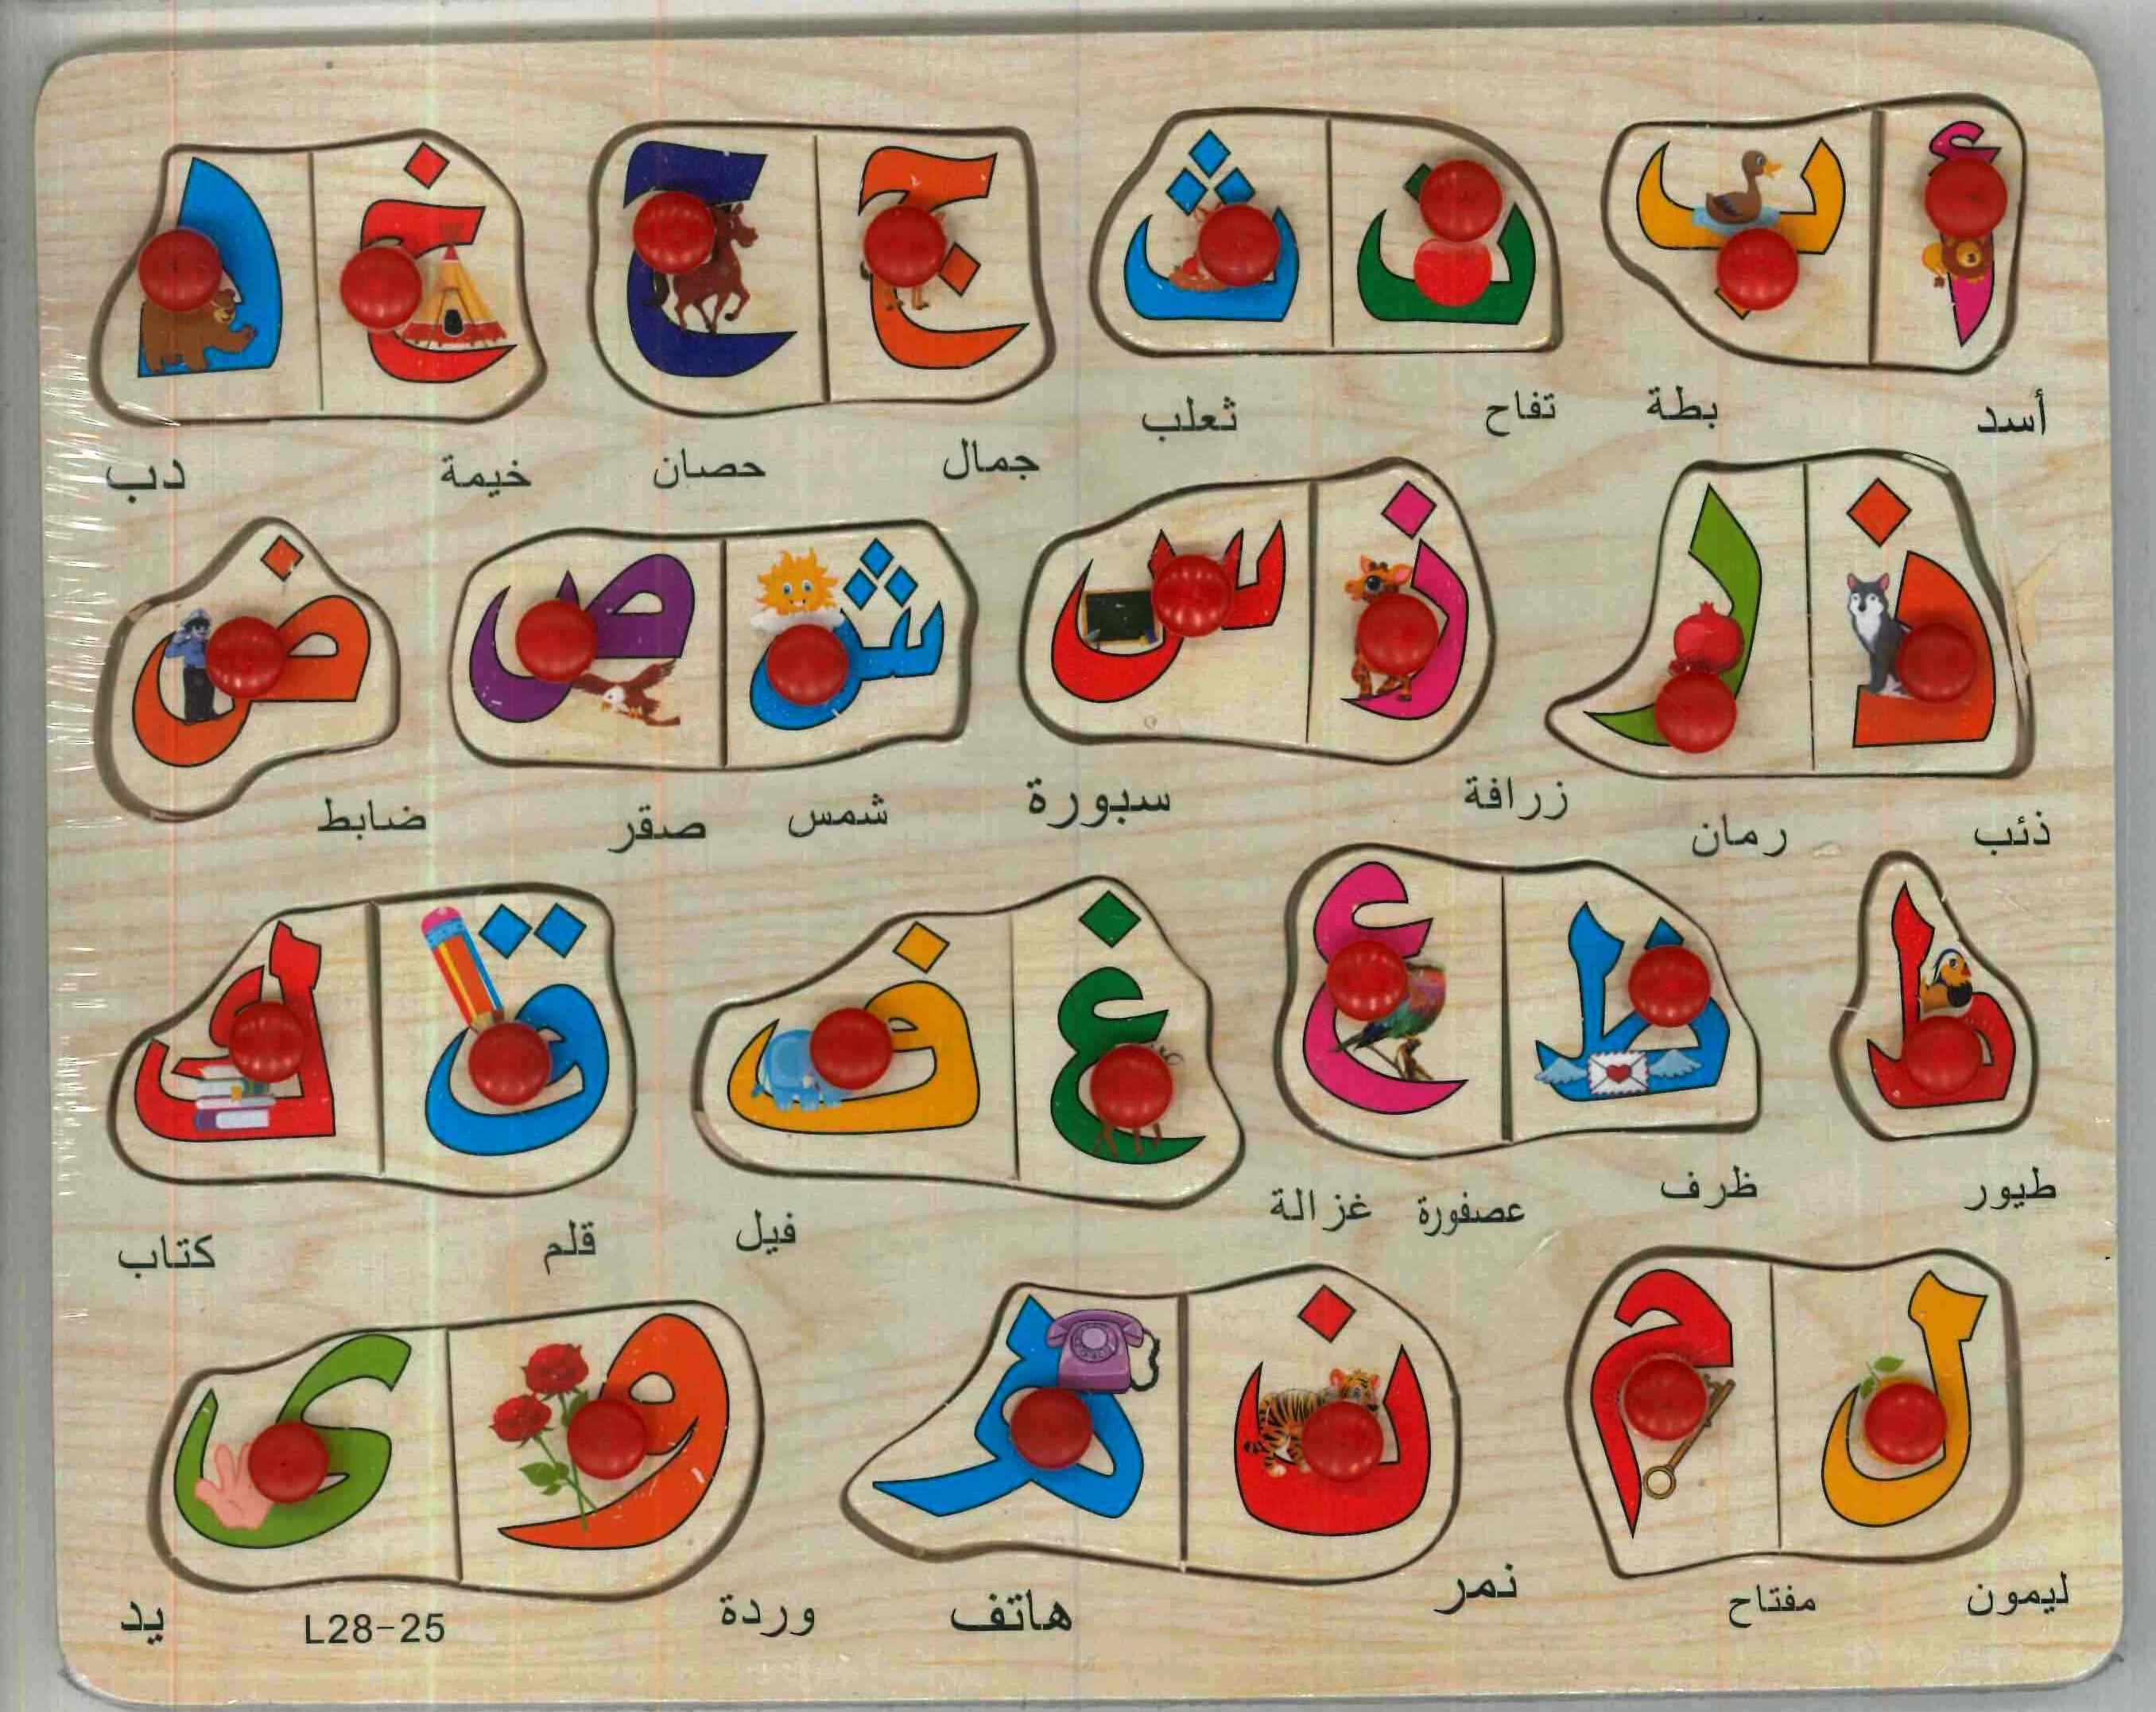 Preschool Wooden Small Puzzle Board (Clock/ Vegetables / Arabic Letter/ Transport / Animals / Sea Animals/ Numbers) Jigsaw Puzzle, Early Educational Toy for Toddlers and Kids